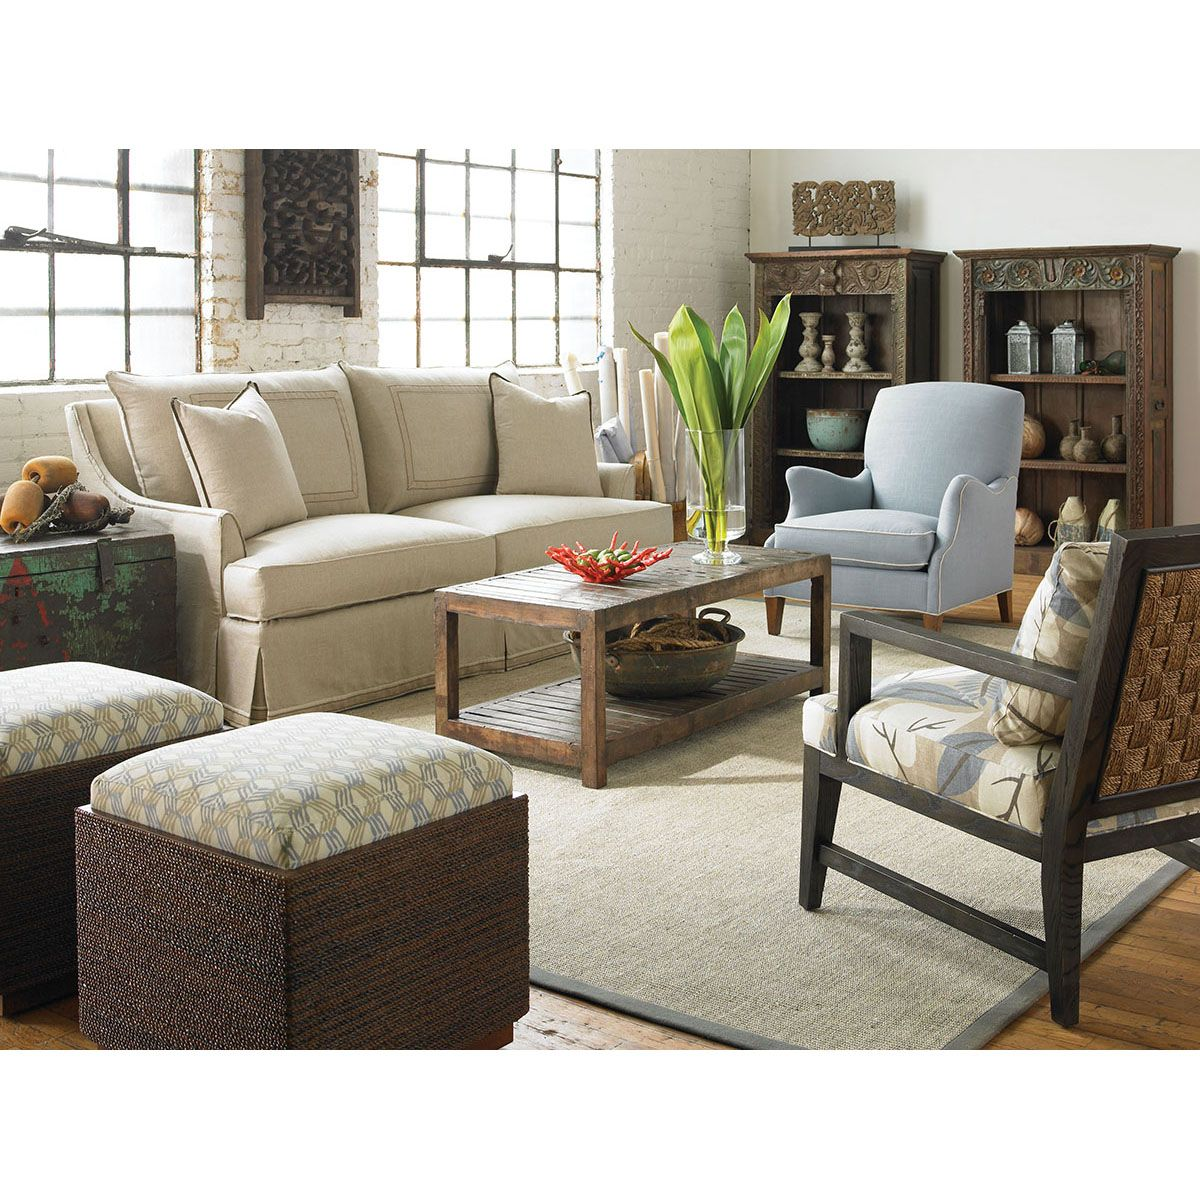 Window ideas for family room  vanguard furniture lombardi sofa vs  vanguad furniture  pinterest